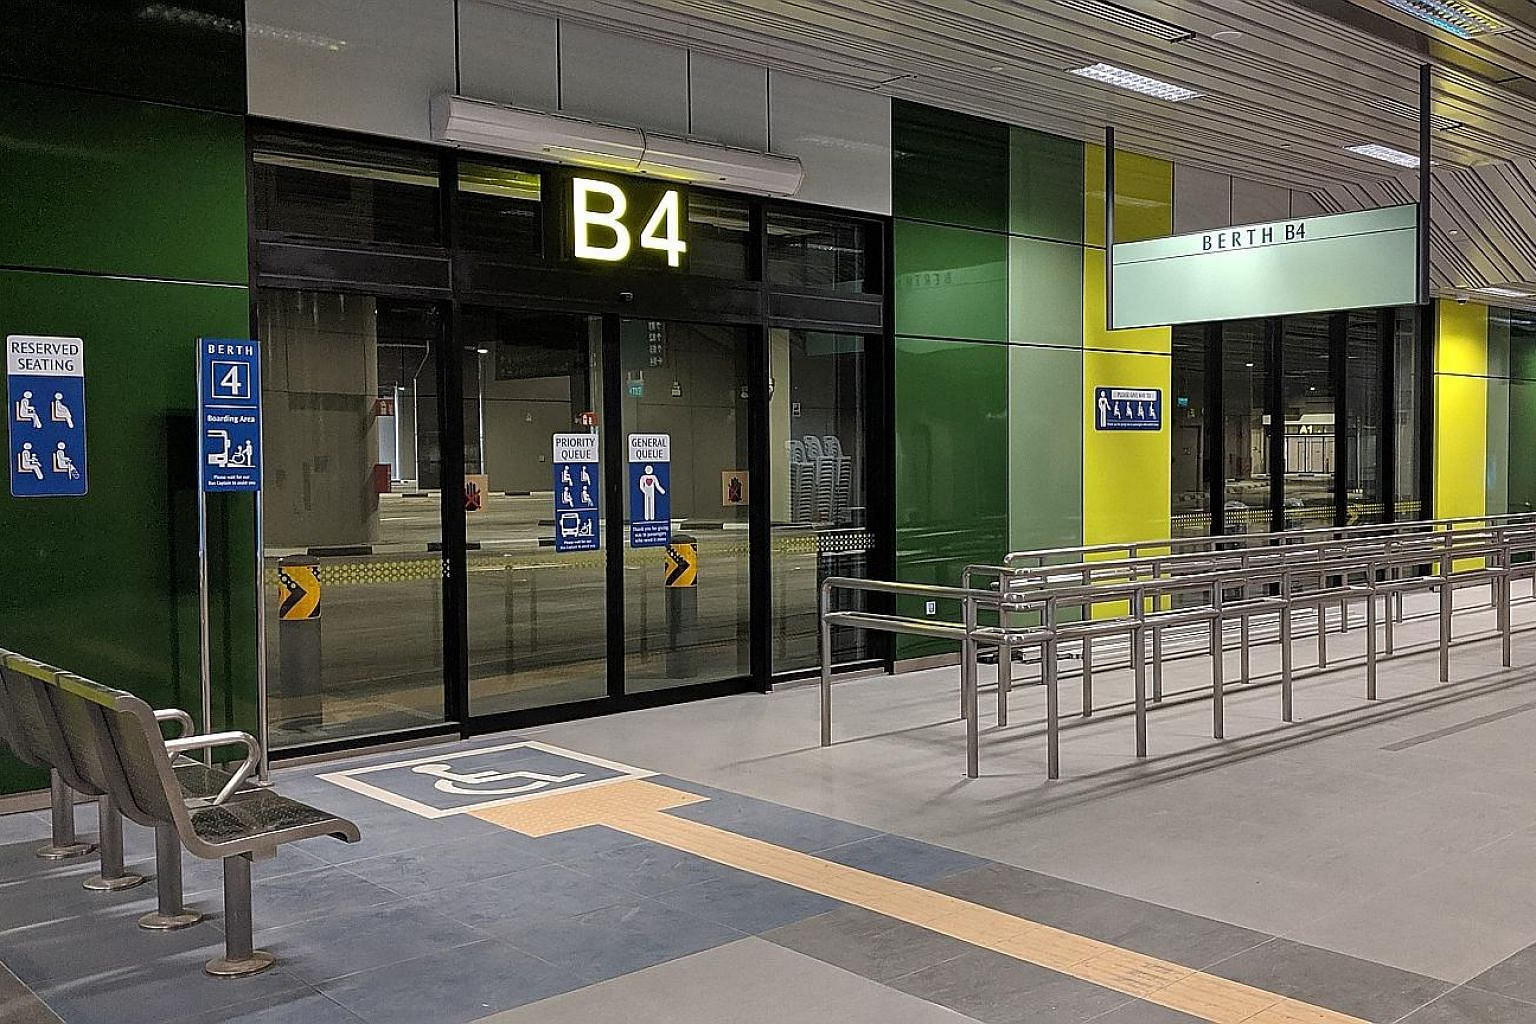 The new integrated transport hub has dedicated boarding points at each berth and graduated kerb edges to facilitate boarding by passengers in wheelchairs, said the Land Transport Authority.